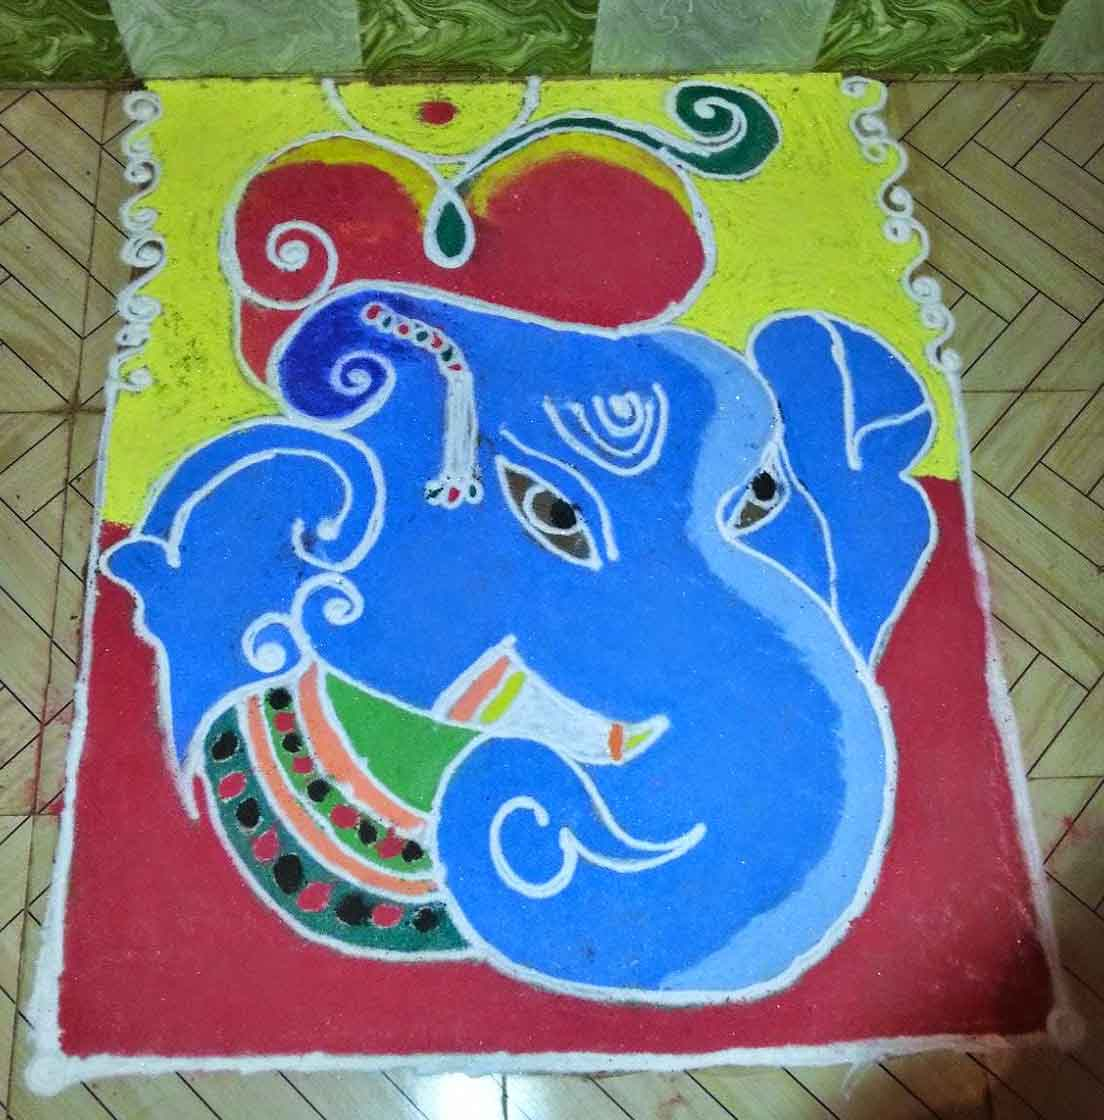 Beautiful ganesh ji rangoli